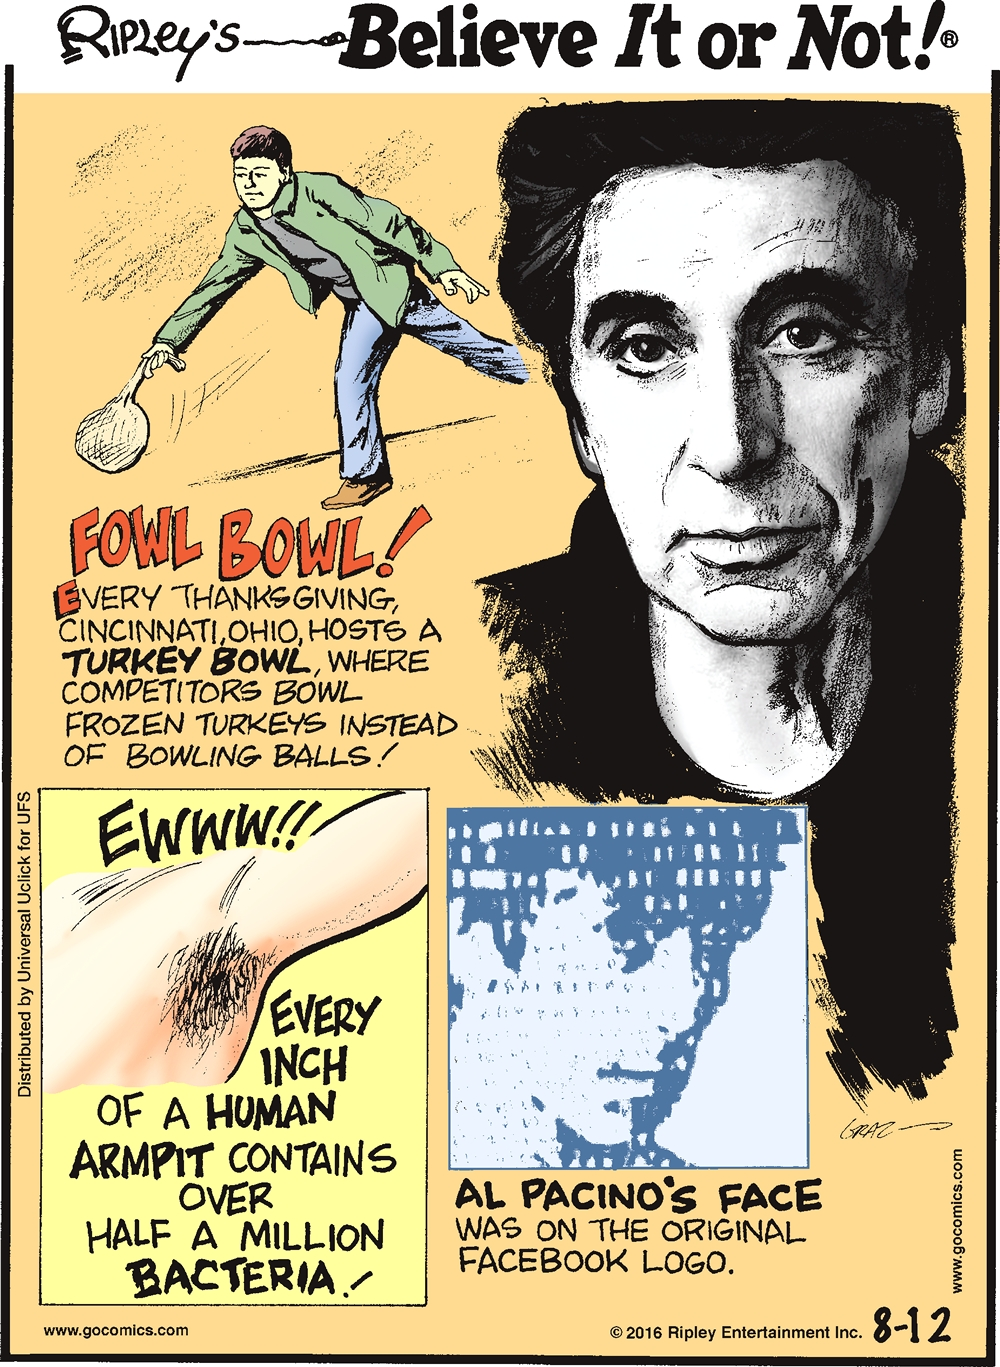 Fowl bowl! Every Thanksgiving, Cincinnati, Ohio, hosts a Turkey Bowl, where competitors bowl frozen turkeys instead of bowling balls! -------------------- Every inch of the human armpit contains over half a million bacteria! -------------------- Al Pacino's face was on the original Facebook logo.